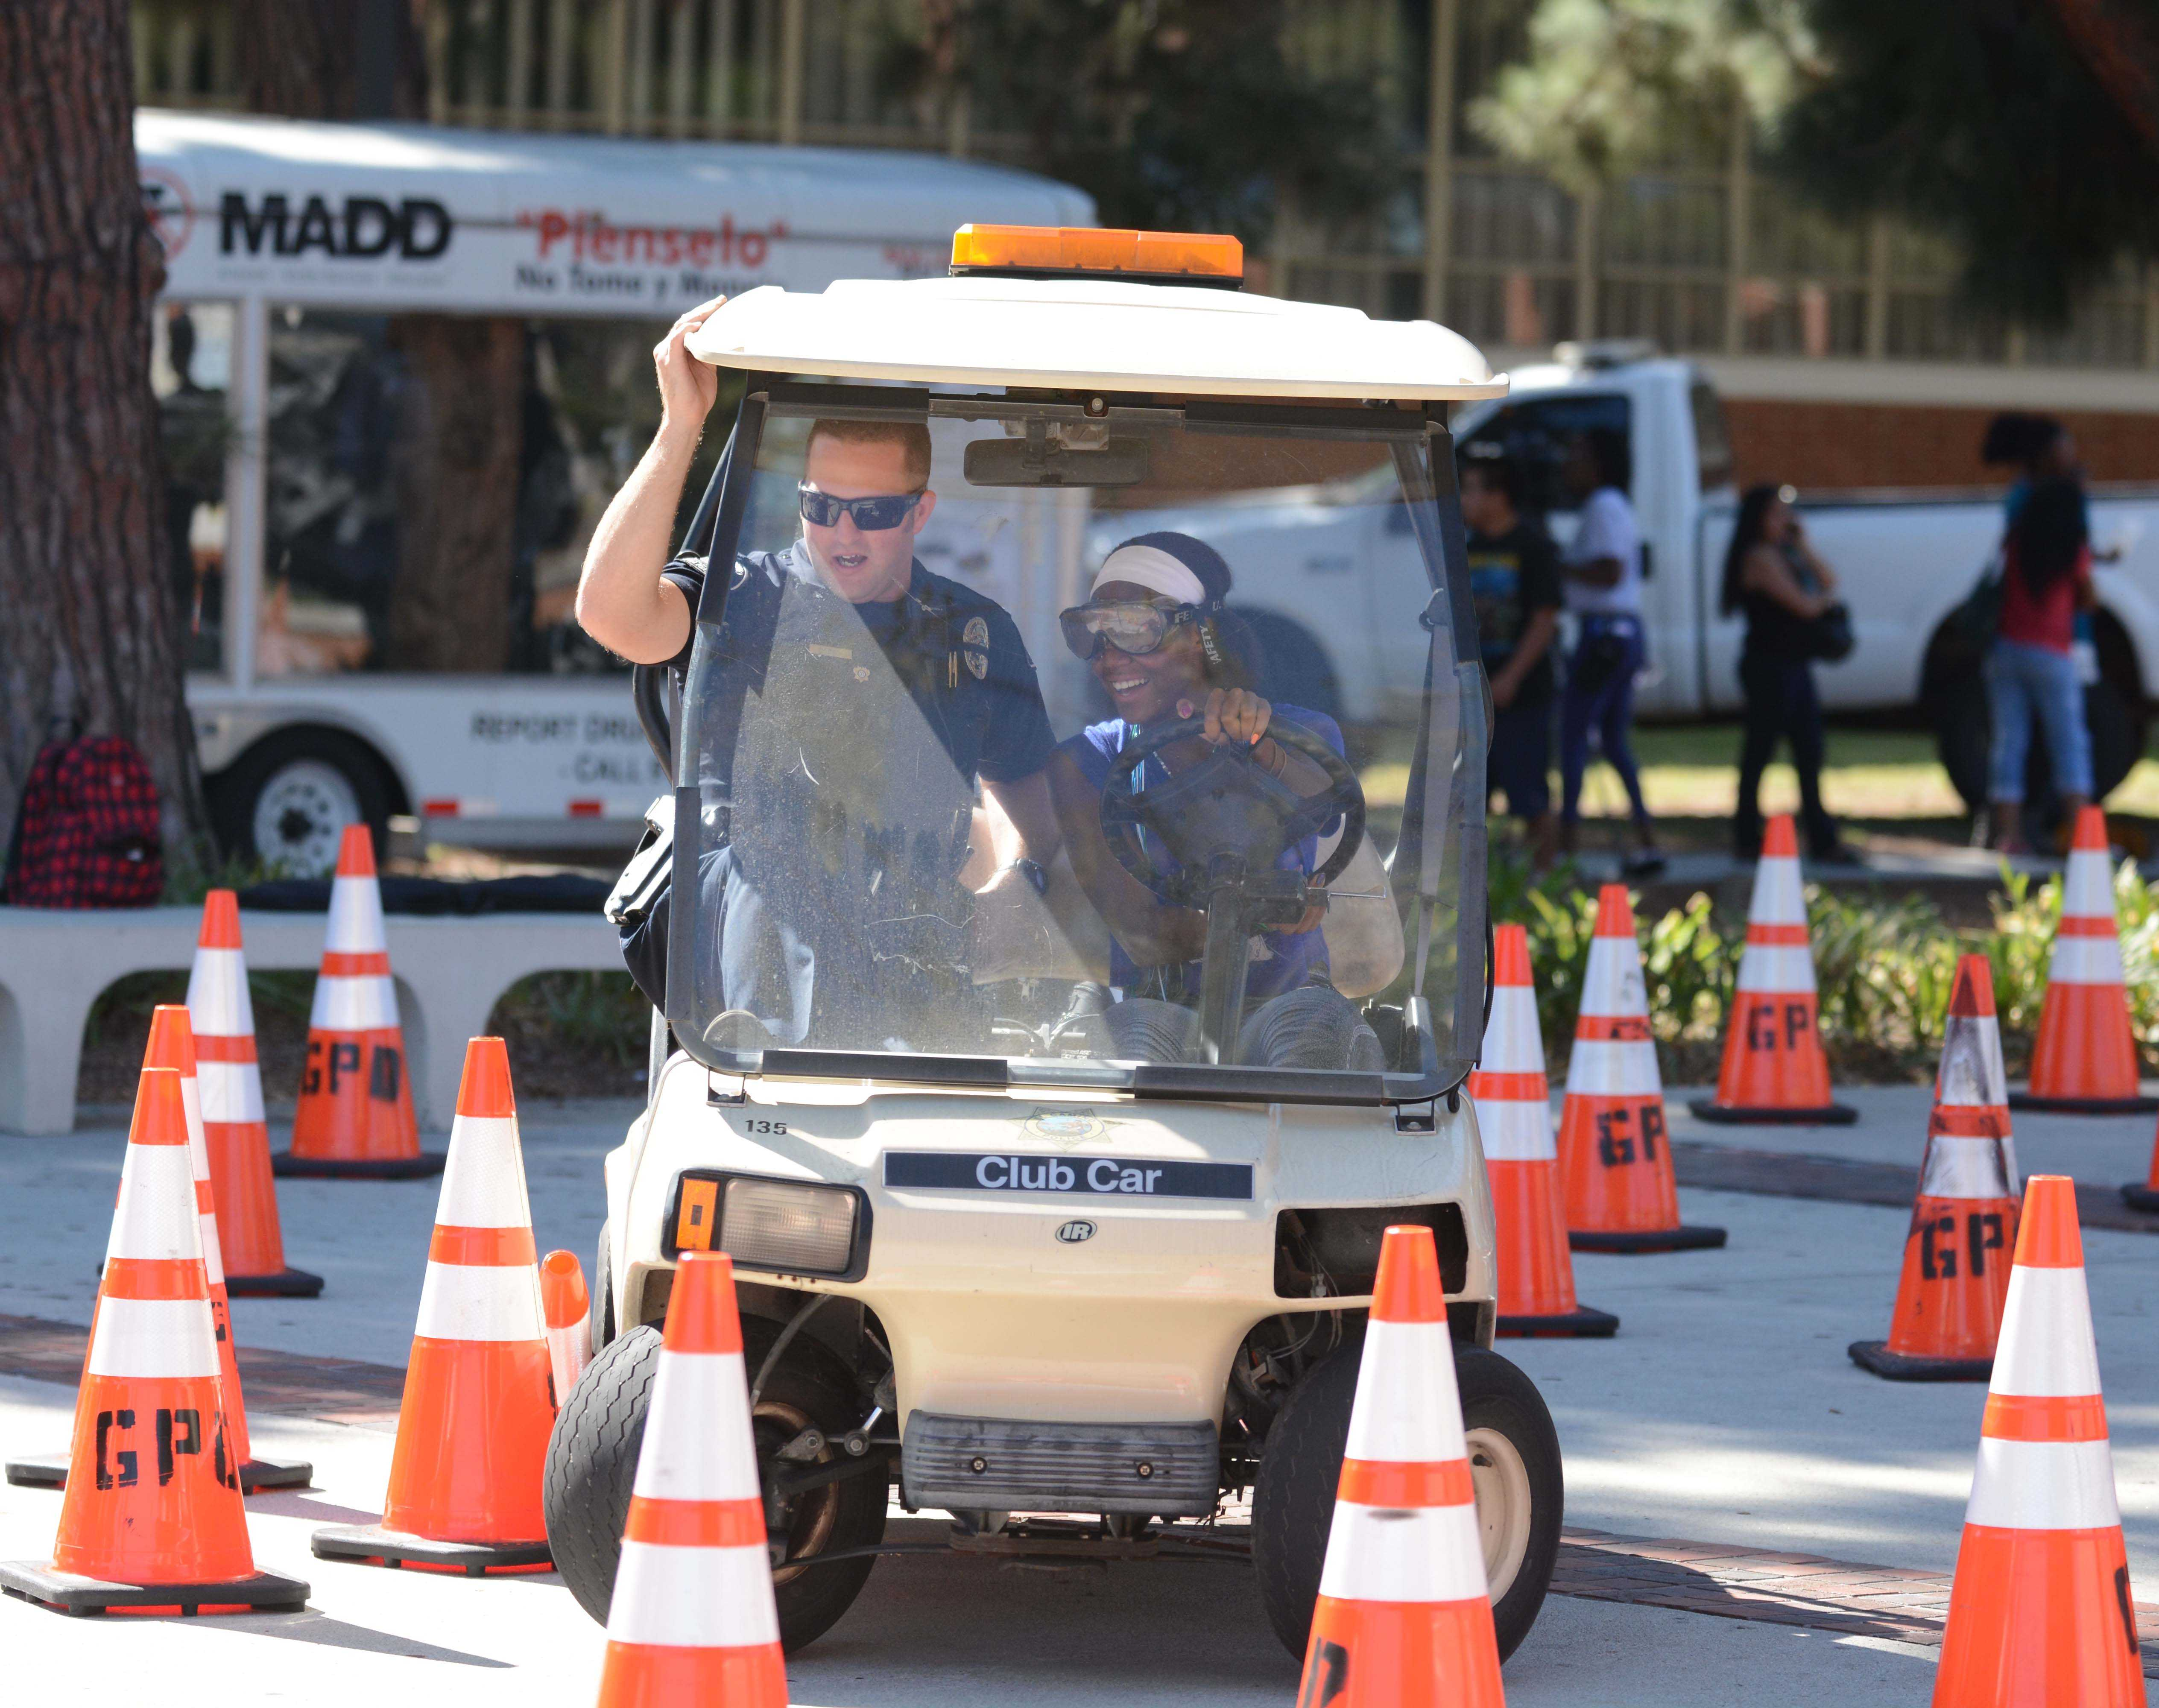 Shadera Woodland, 18, physical therapy major, steers a golf cart while wearing drunk googles as EC Police Officer Matt Ryan holds on while guiding Woodland at the 2014 DUI awareness. ECPD will be hosting the 15th annual DUI awarrness fair on Thursday Oct. 29 near the Library Lawn. Photo credit: John Fordiani